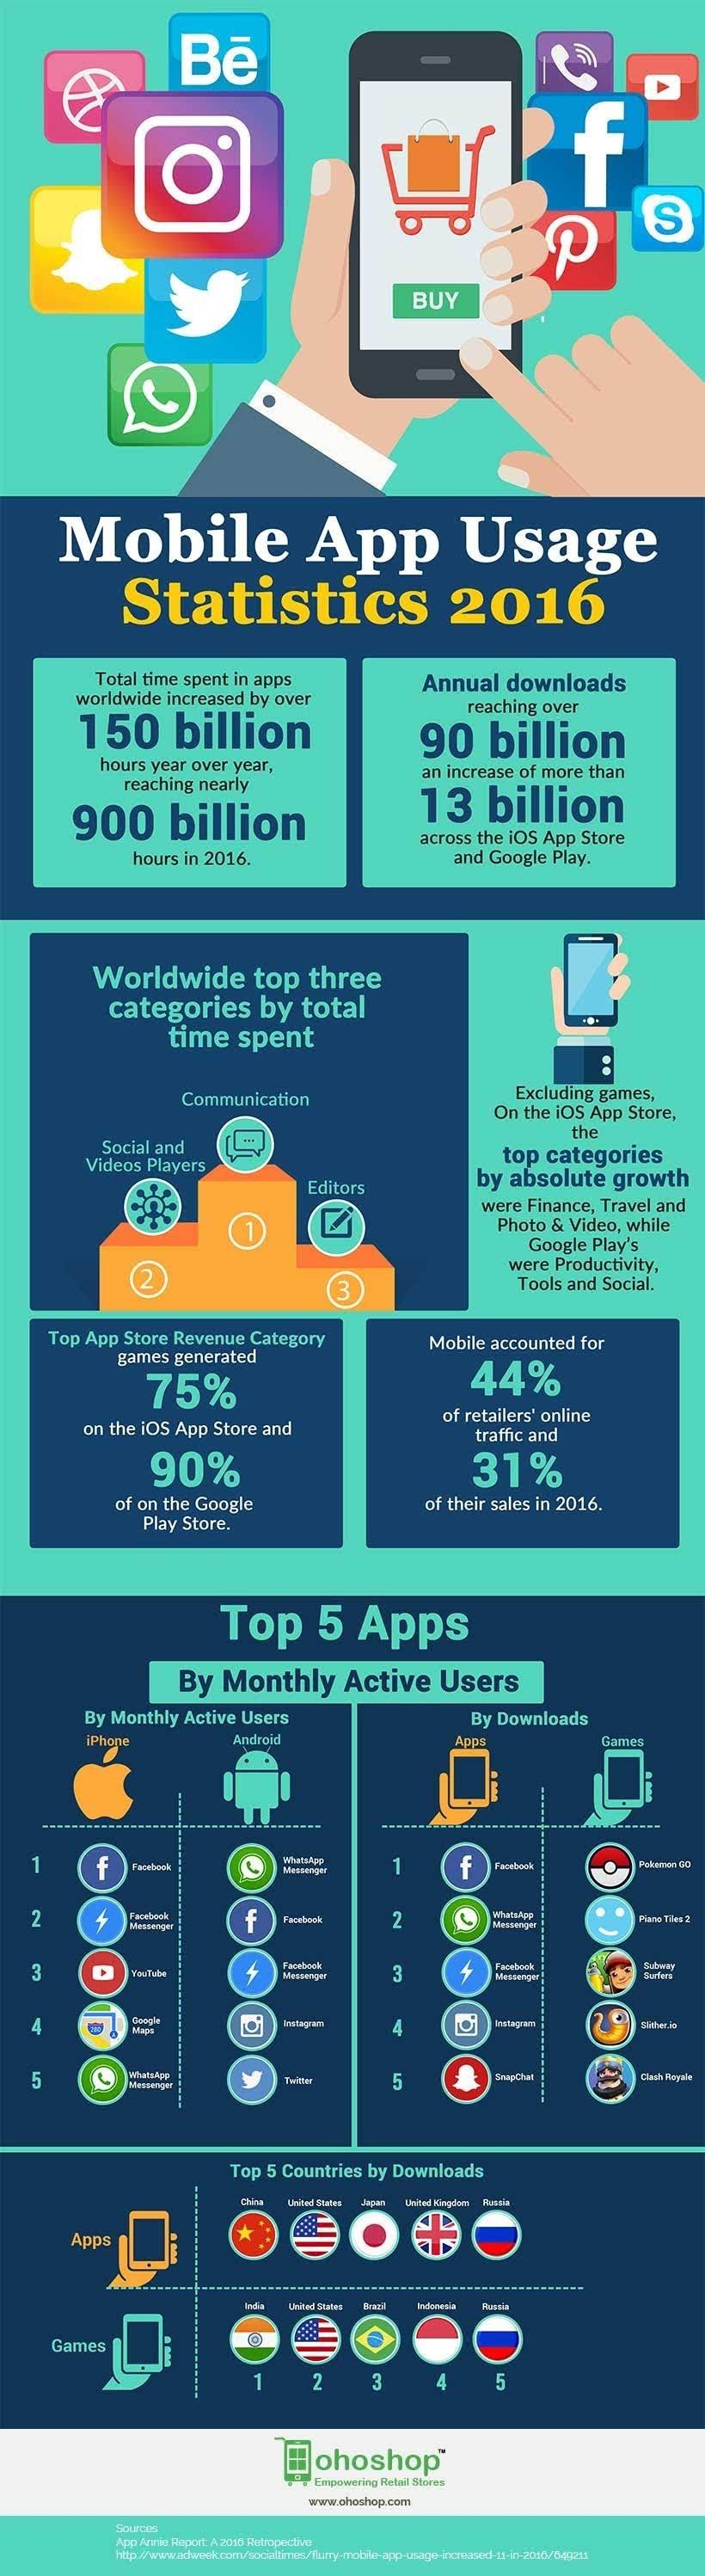 Statistics of Mobile App Use 2016 #infographic